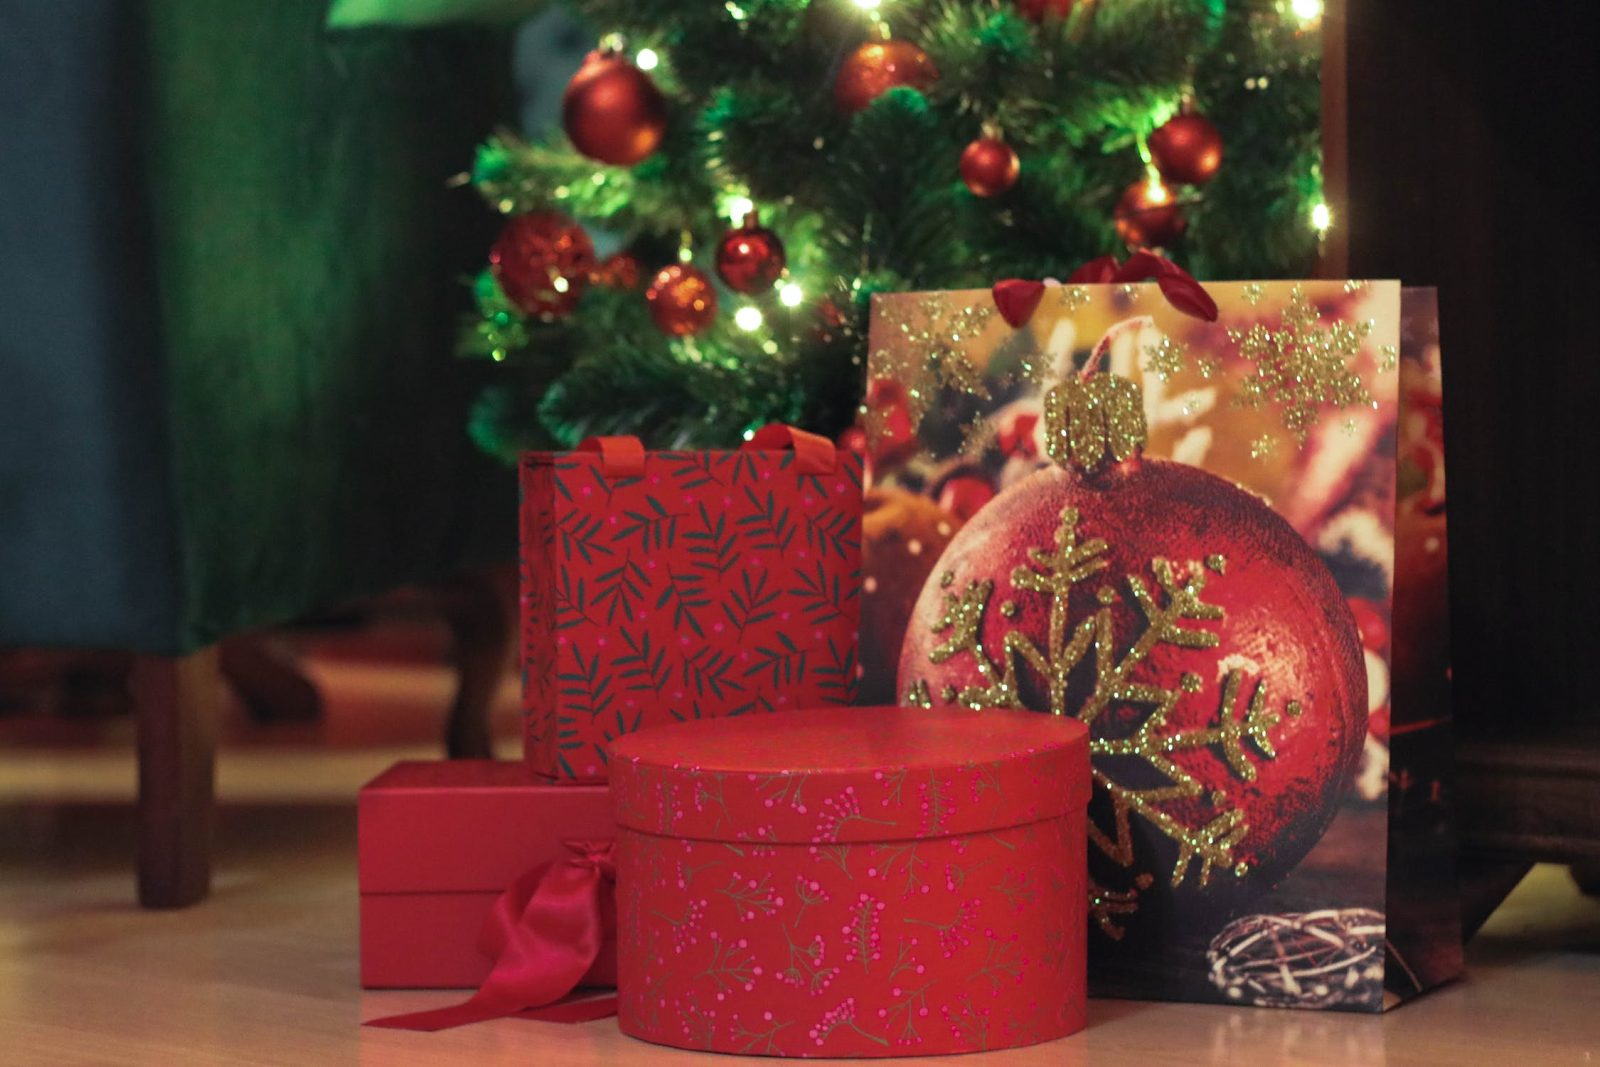 Christmas presents wrapped with bows and ribbons